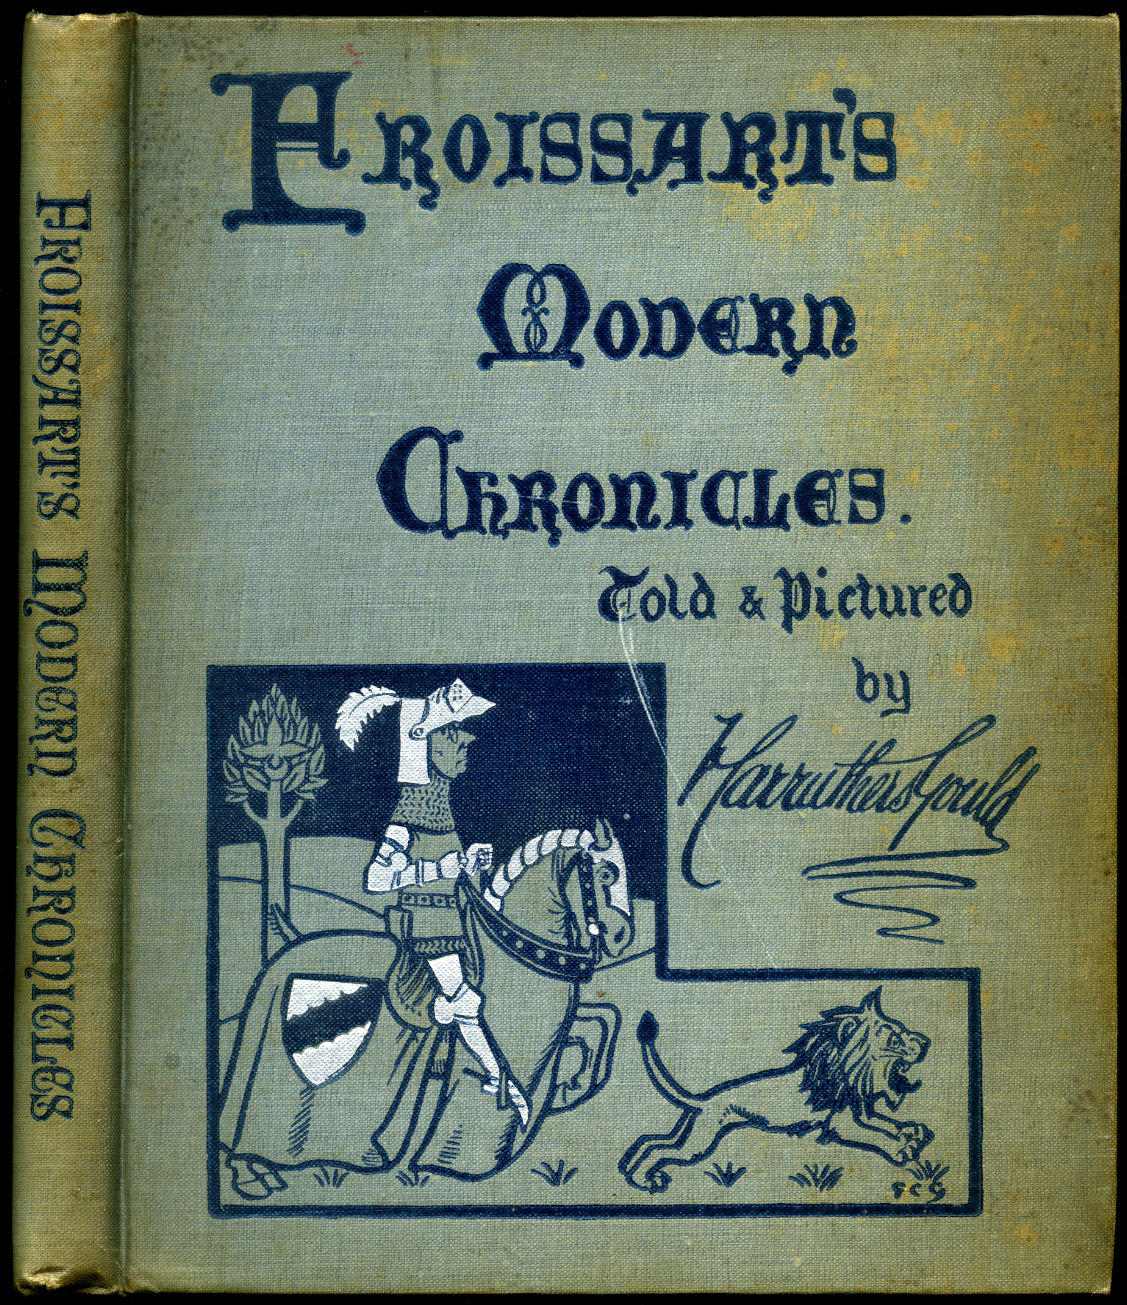 GOULD, FRANCIS CARRUTHERS [1844-1925] - Froissart's Modern Chronicles